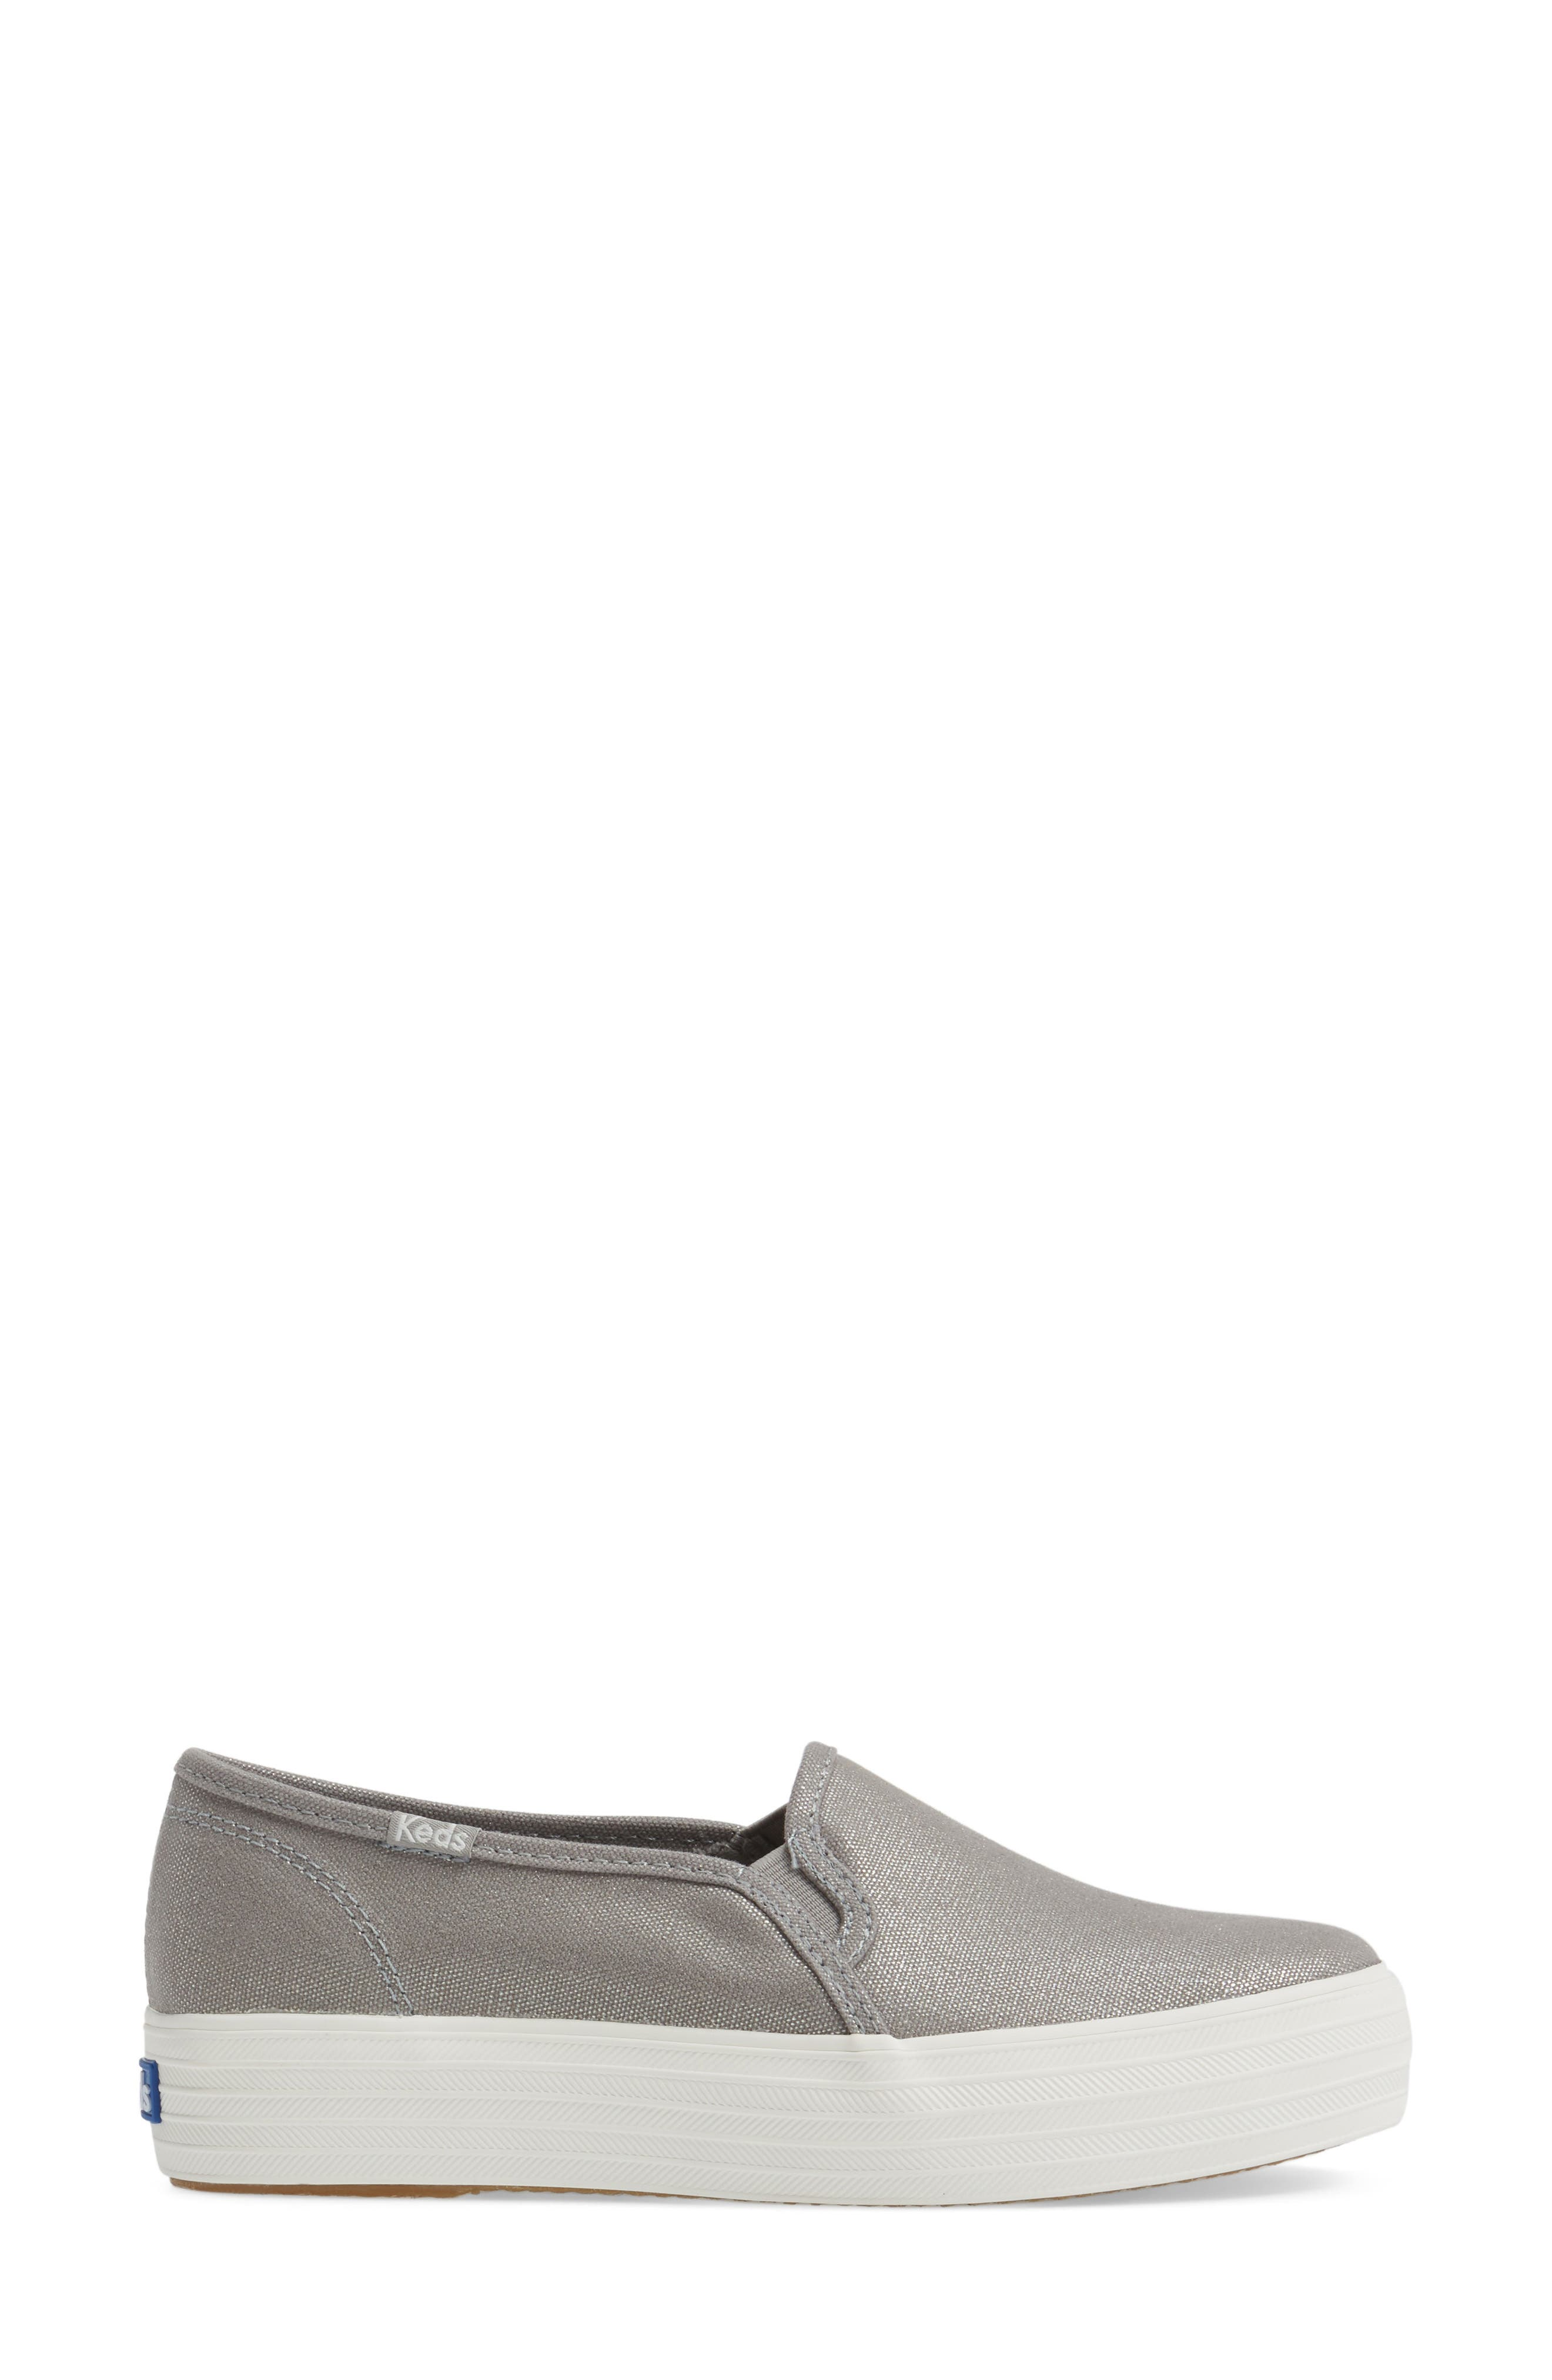 Triple Decker Slip-On Platform Sneaker,                             Alternate thumbnail 3, color,                             Silver